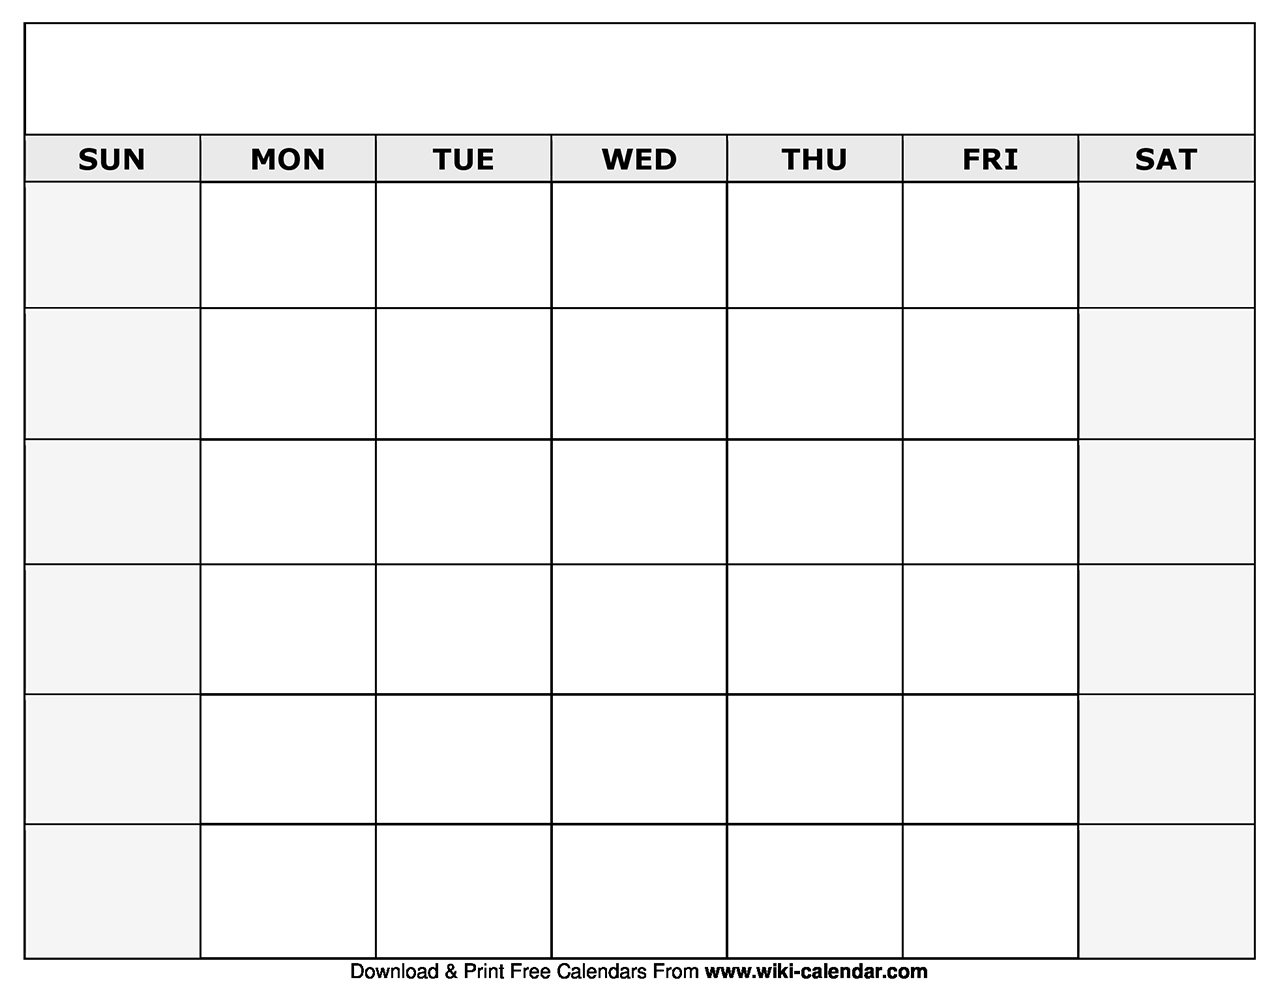 Printable Blank Calendar Templates pertaining to Month By Month Prontable Calender